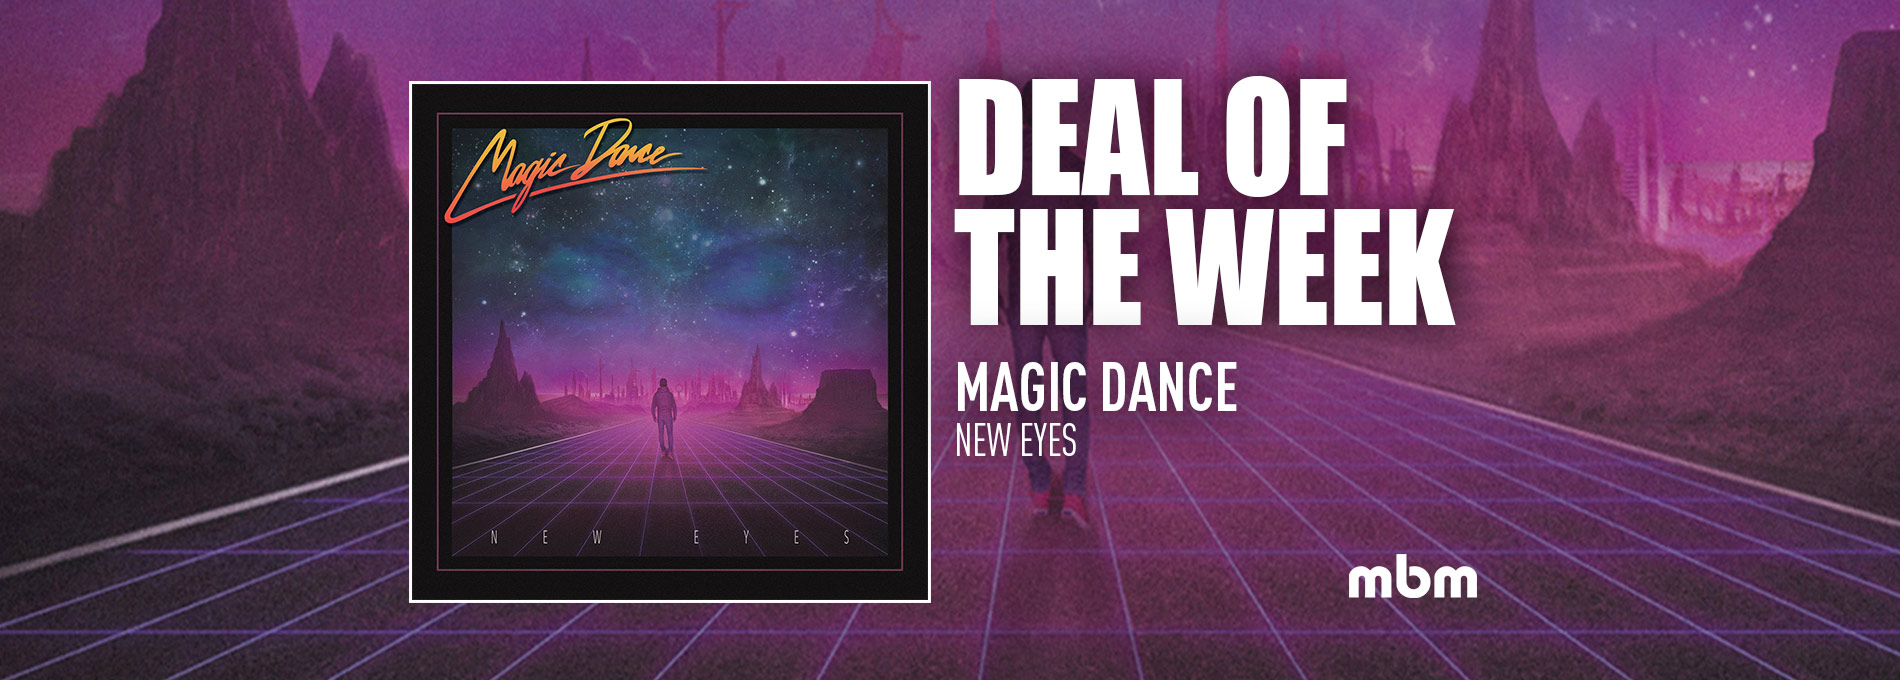 Deal Of The Week: MAGIC DANCE - New Eyes